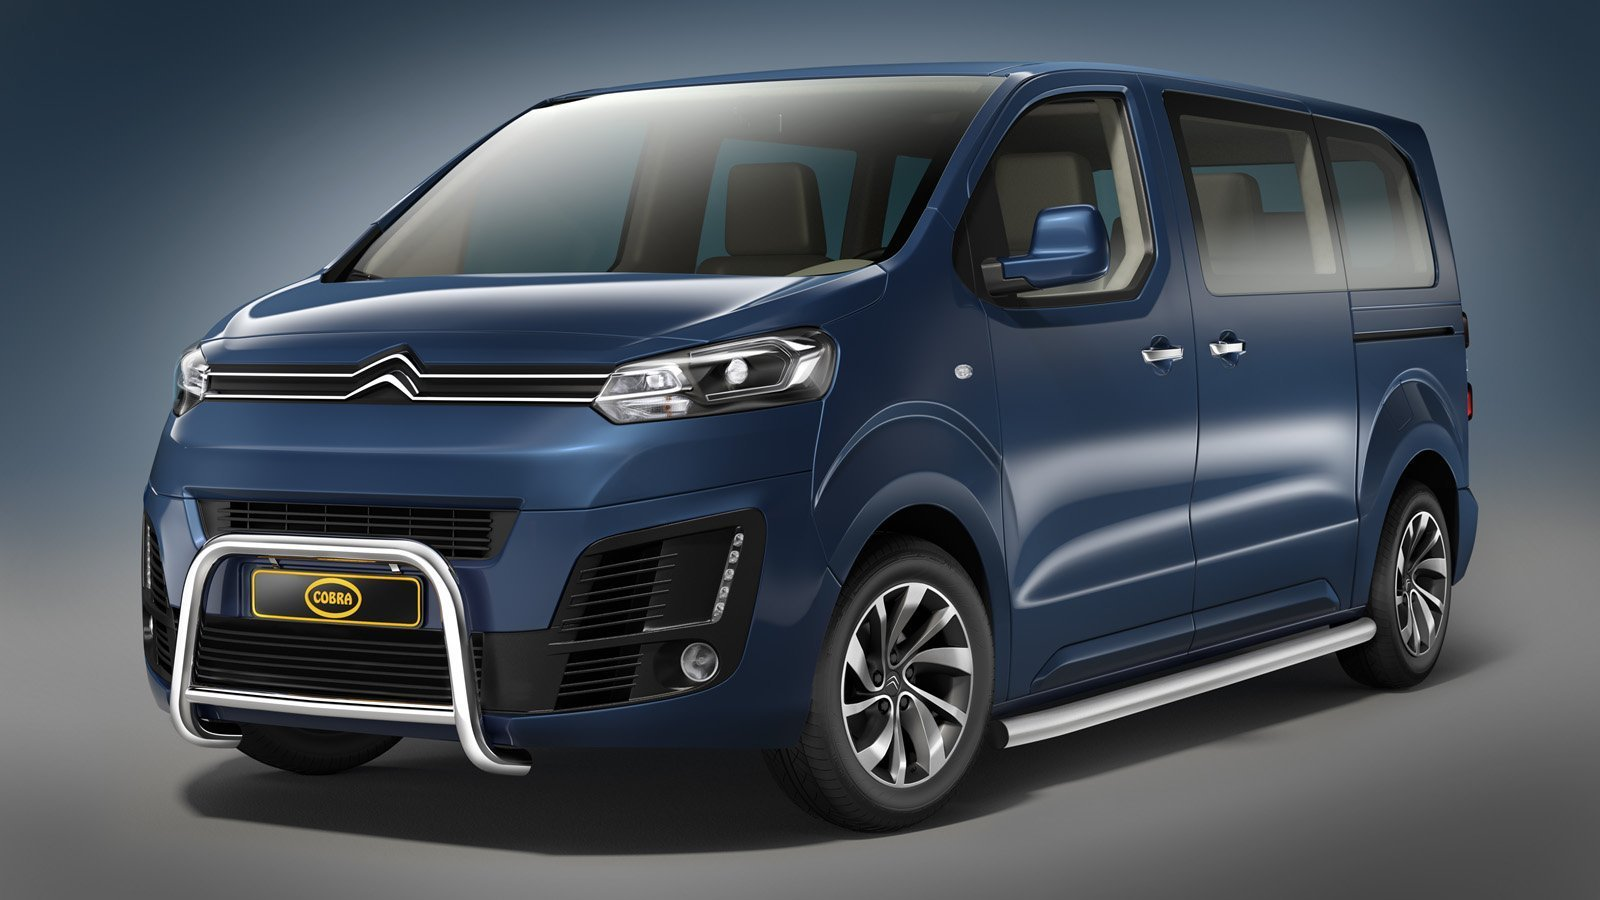 Citroen Jumpy Safety Side Bars Tuning Parts To New Jumpy